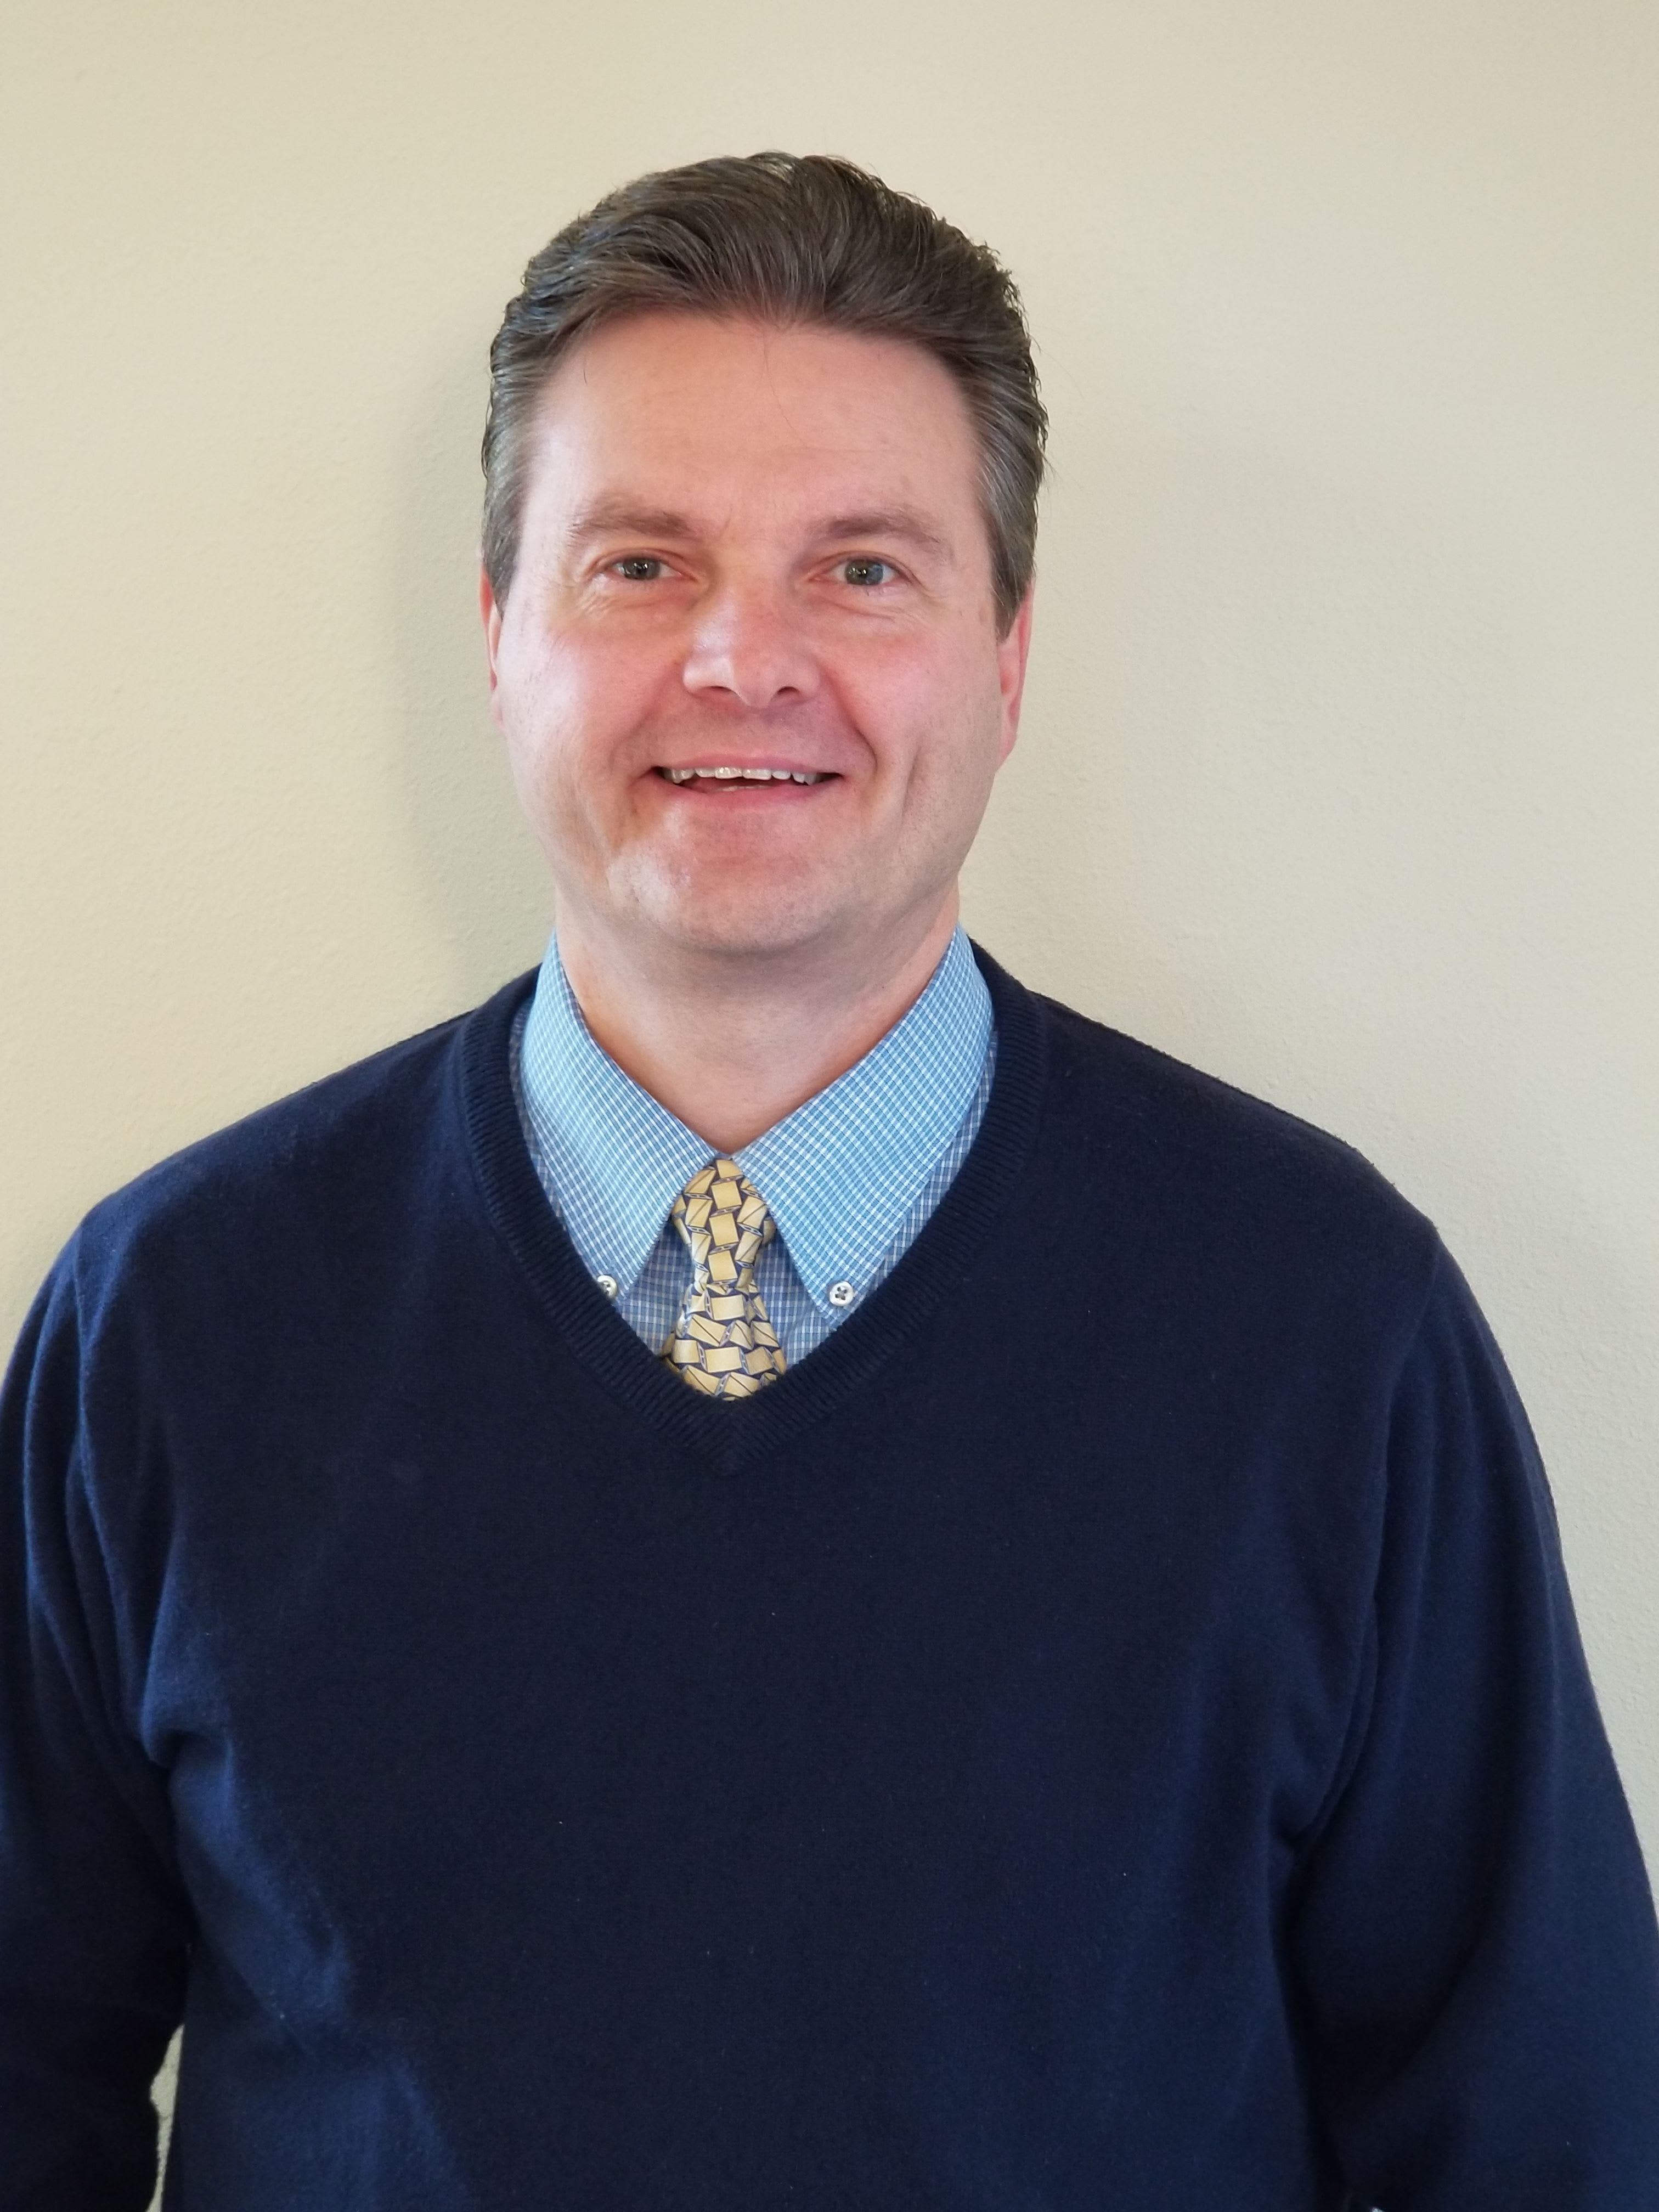 Gary Jacobs, Executive Director, Chateau Valley Center